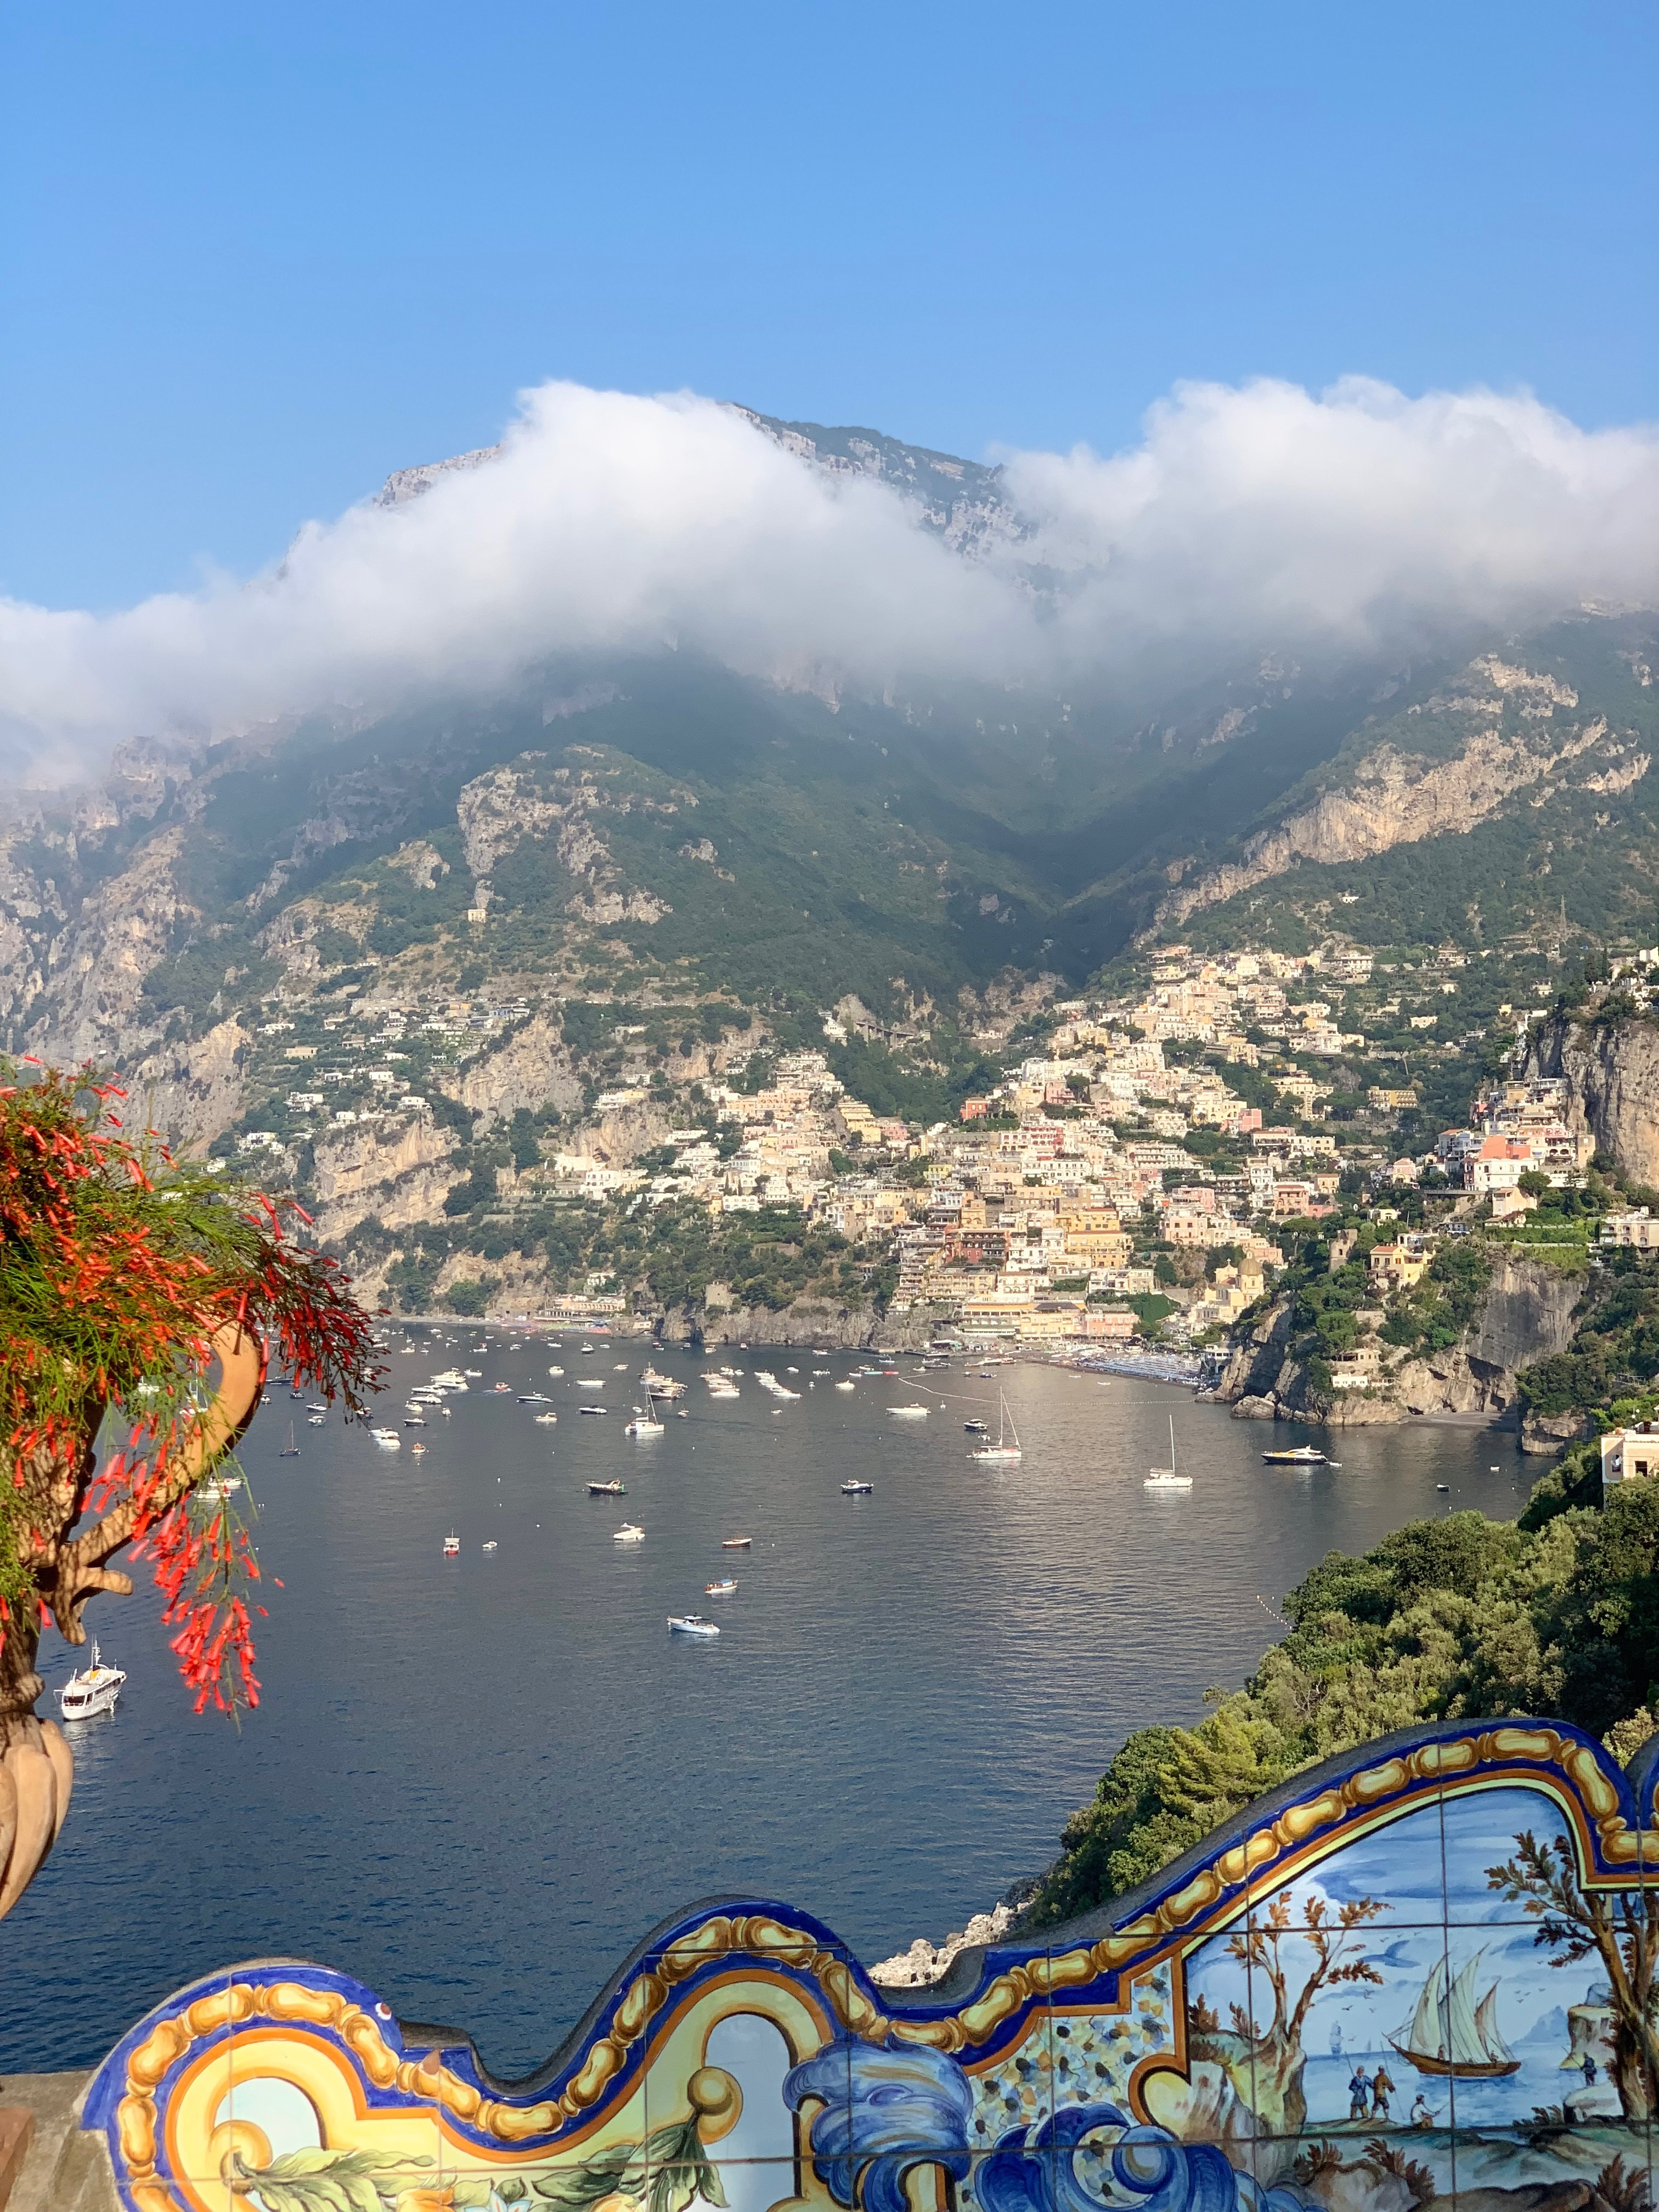 view of Positano with ships in harbor and mountainside village